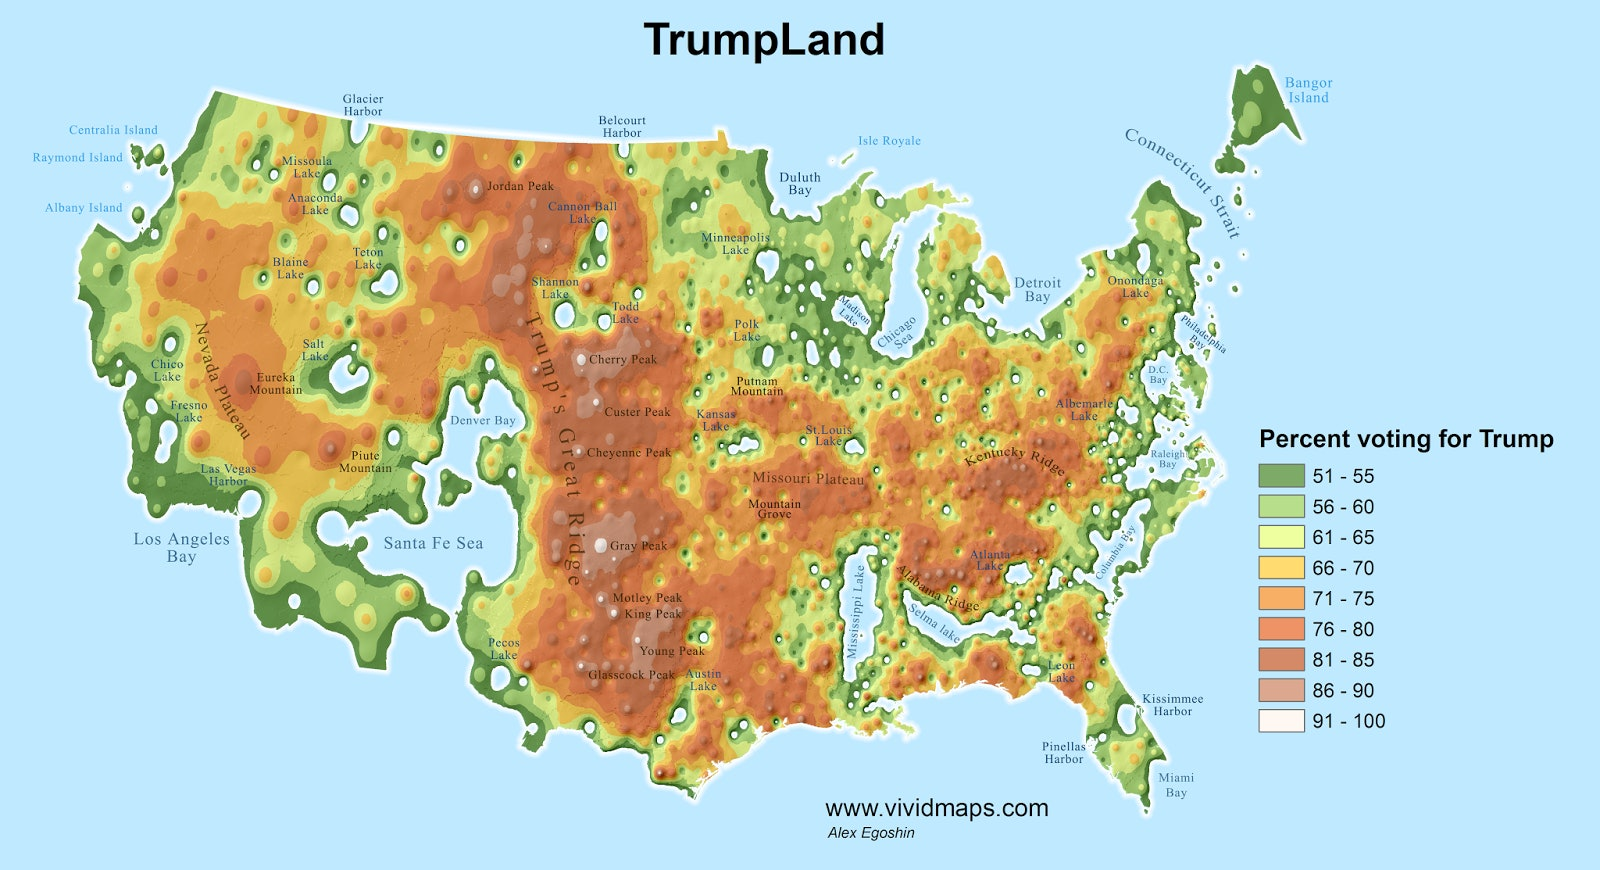 Detailed Maps Split the U.S. Into TrumpLand and the Clinton ... on detailed map of yellowstone national park, detailed map of martha's vineyard, detailed map usa states, detailed map of america, detailed map of northeast us, detailed map of brunei, detailed map of interstates in united states, google maps of the us, detailed map of california, detailed map of united arab emirates, detailed map of ohio state, detailed map of haida gwaii, detailed map of the carribean, detailed map of the philippines, detailed map of west ireland, demographics of the us, detailed map of indiana pa, detailed map of pinellas trail, detailed map of uk, satellite imagery of the us,